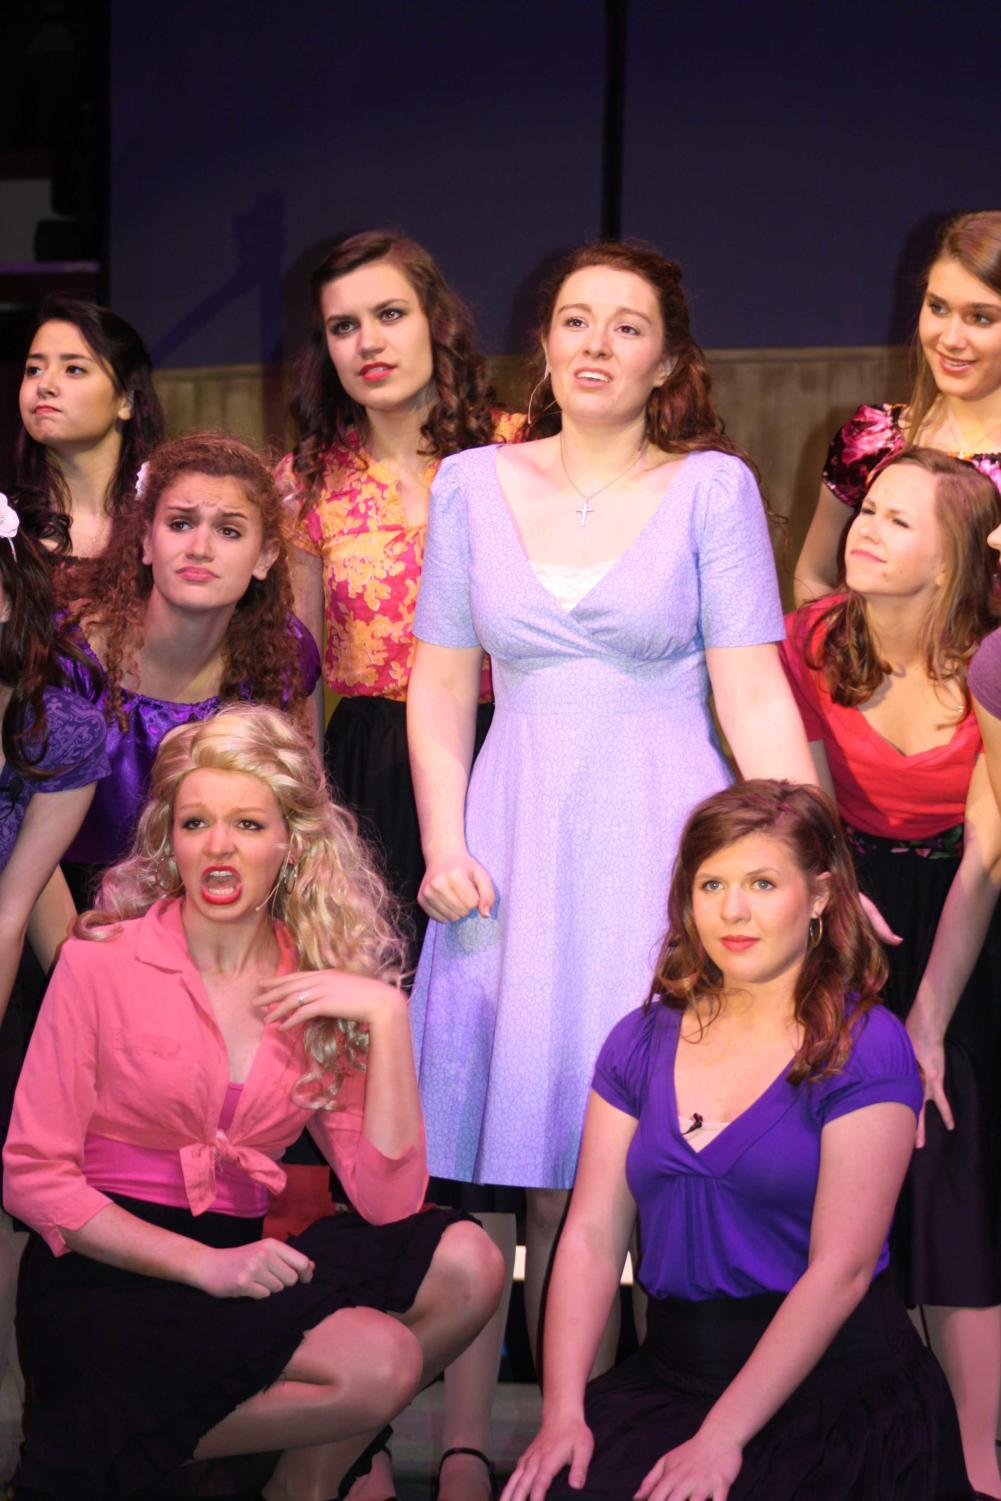 The First United Methodist Church put on the production West Side Story in 2010. FUMC has been producing musicals since 2001, and will be holding auditions for its 2019 show, The Beauty & the Beast, today and tomorrow.